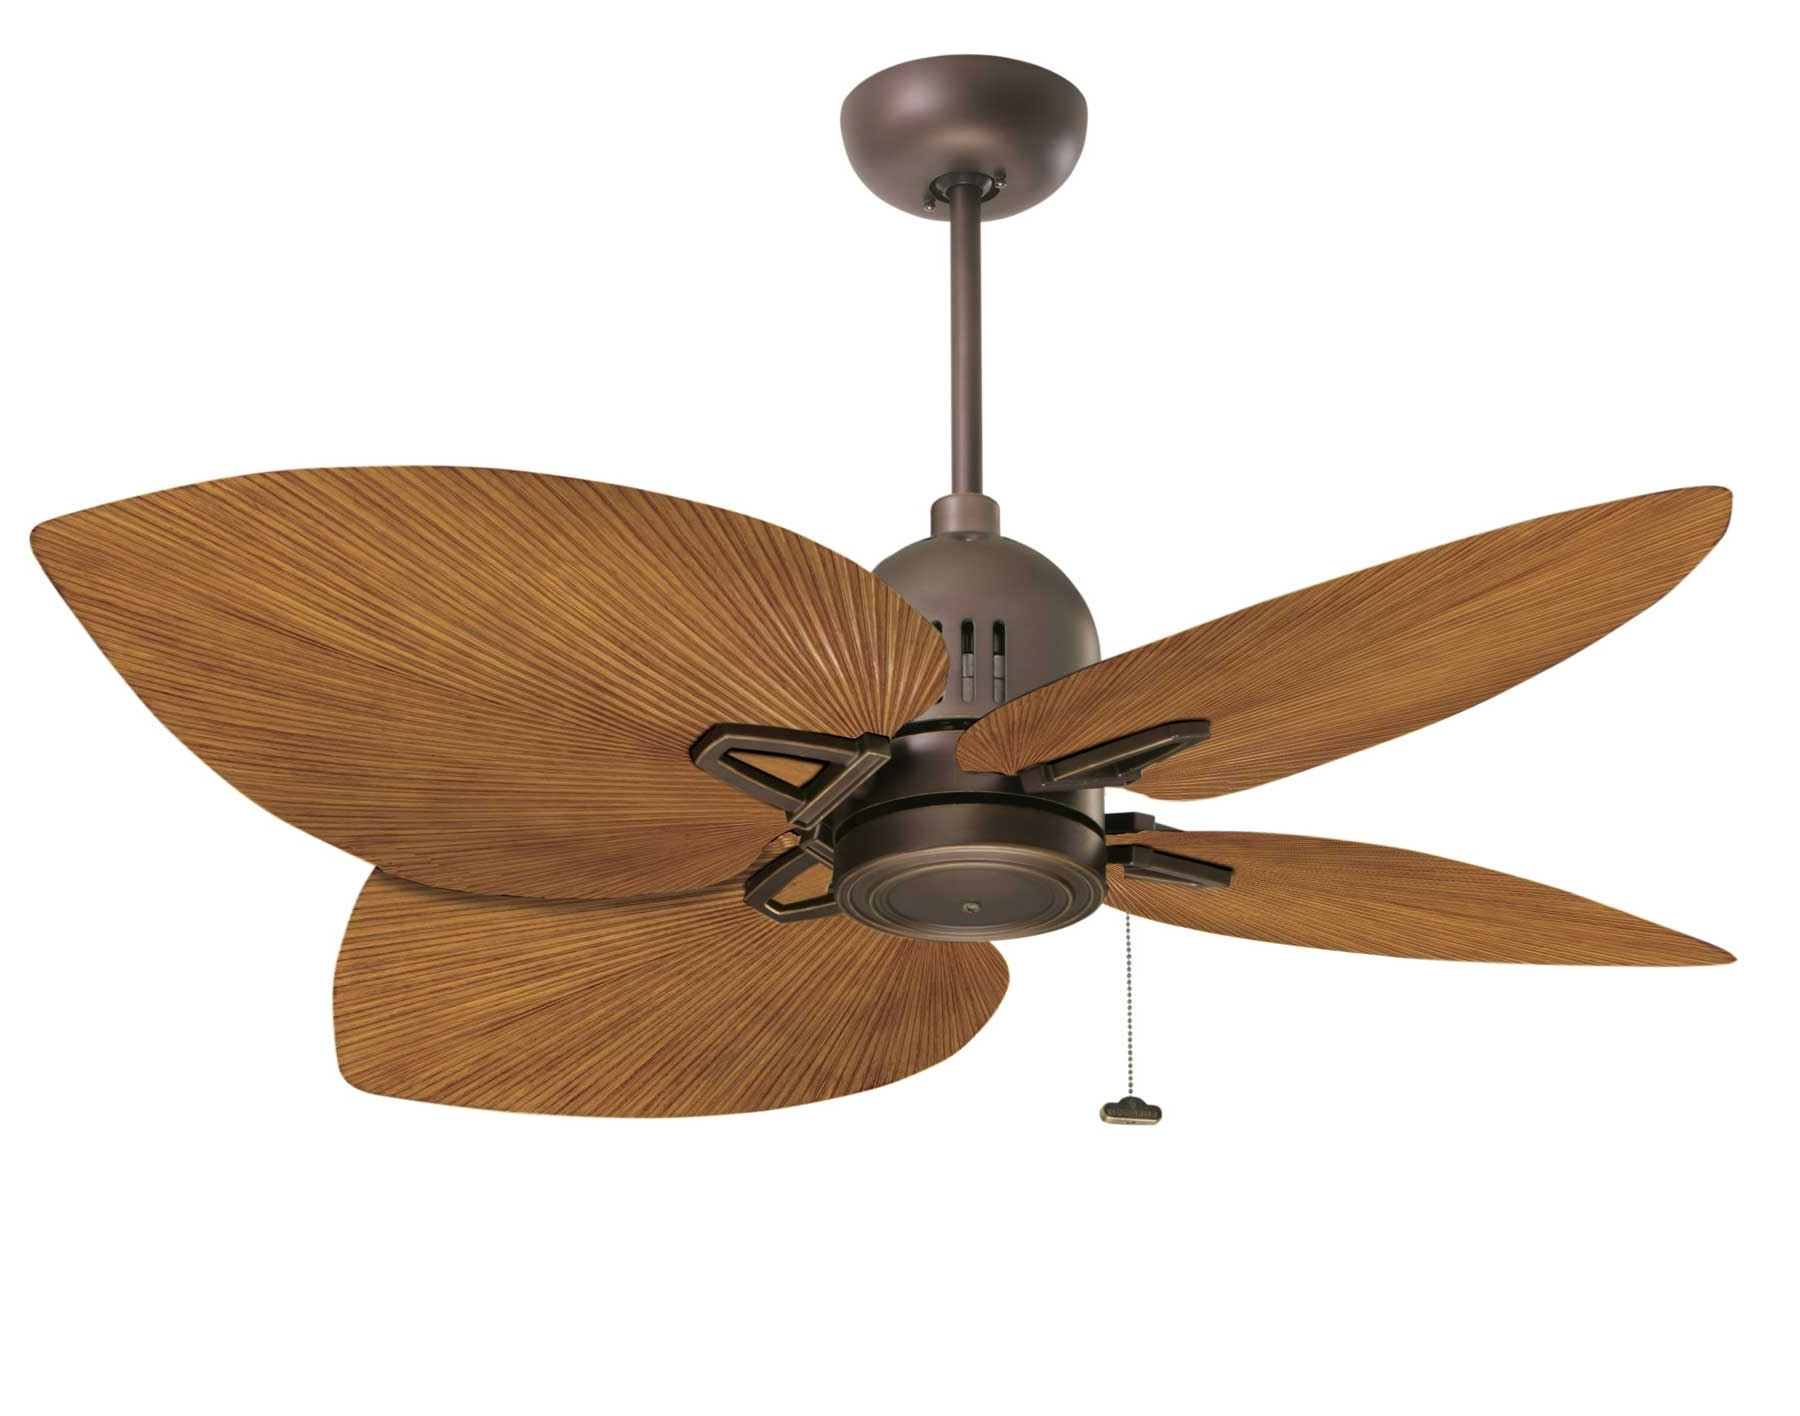 Outdoor Ceiling Fans With Covers Pertaining To Favorite Decor: Bring An Island Look Into Your Home With Cool Ceiling Fan (View 12 of 20)